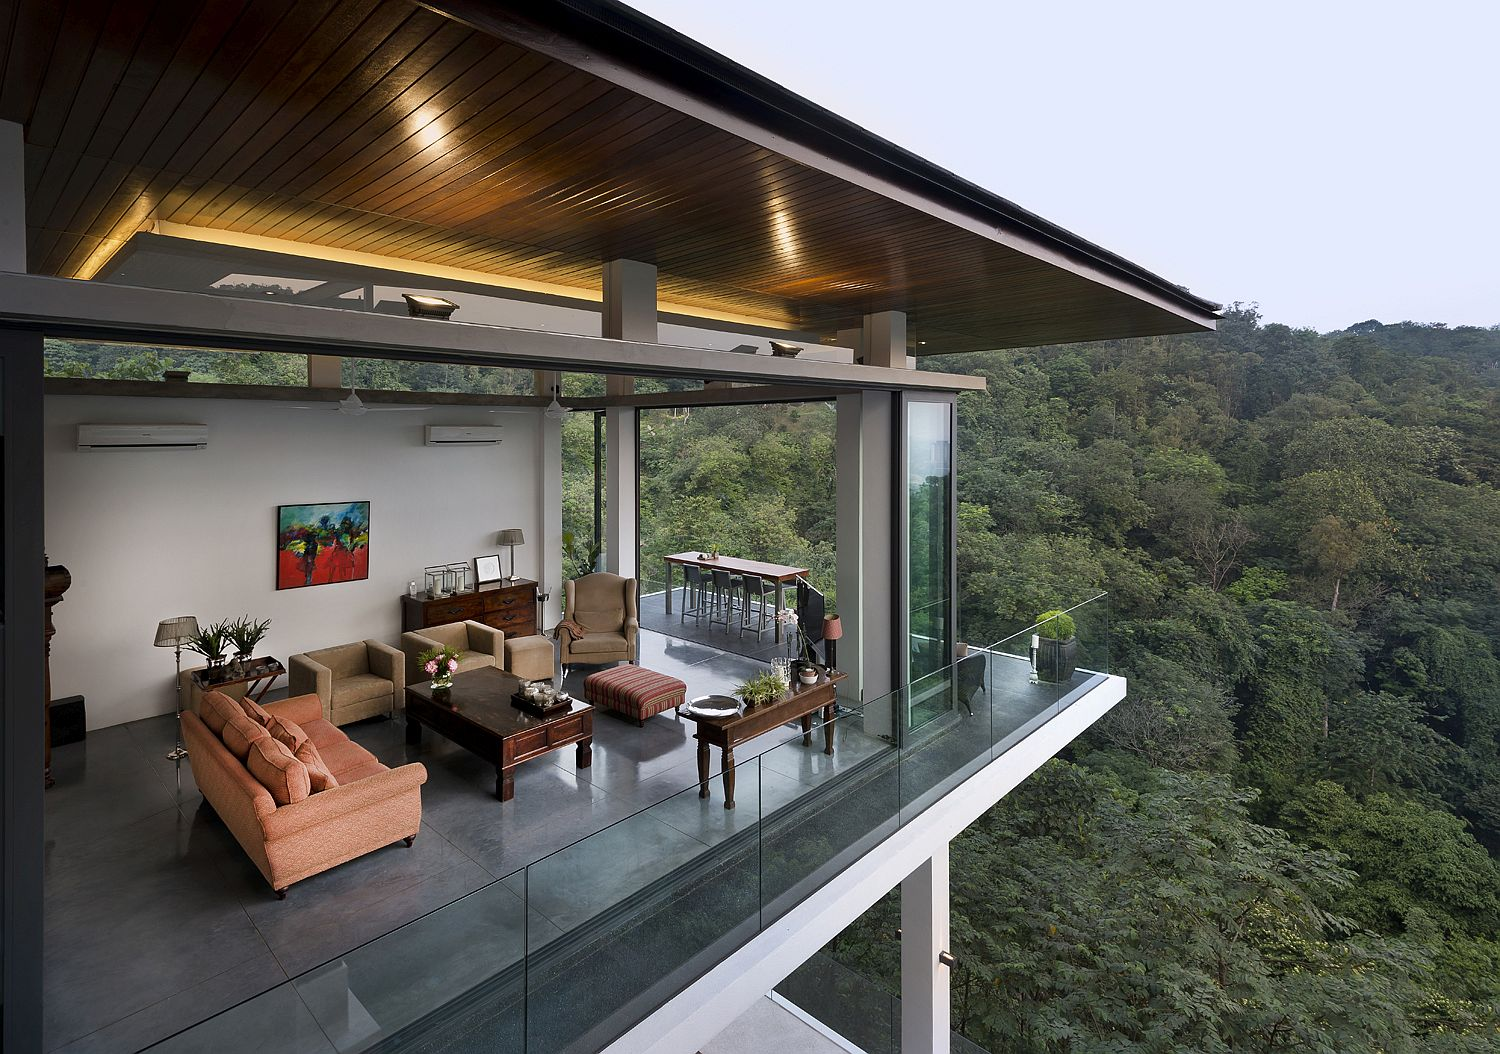 Spectacular Home Featured On Crazy Rich Asians With Amazing Forest Views